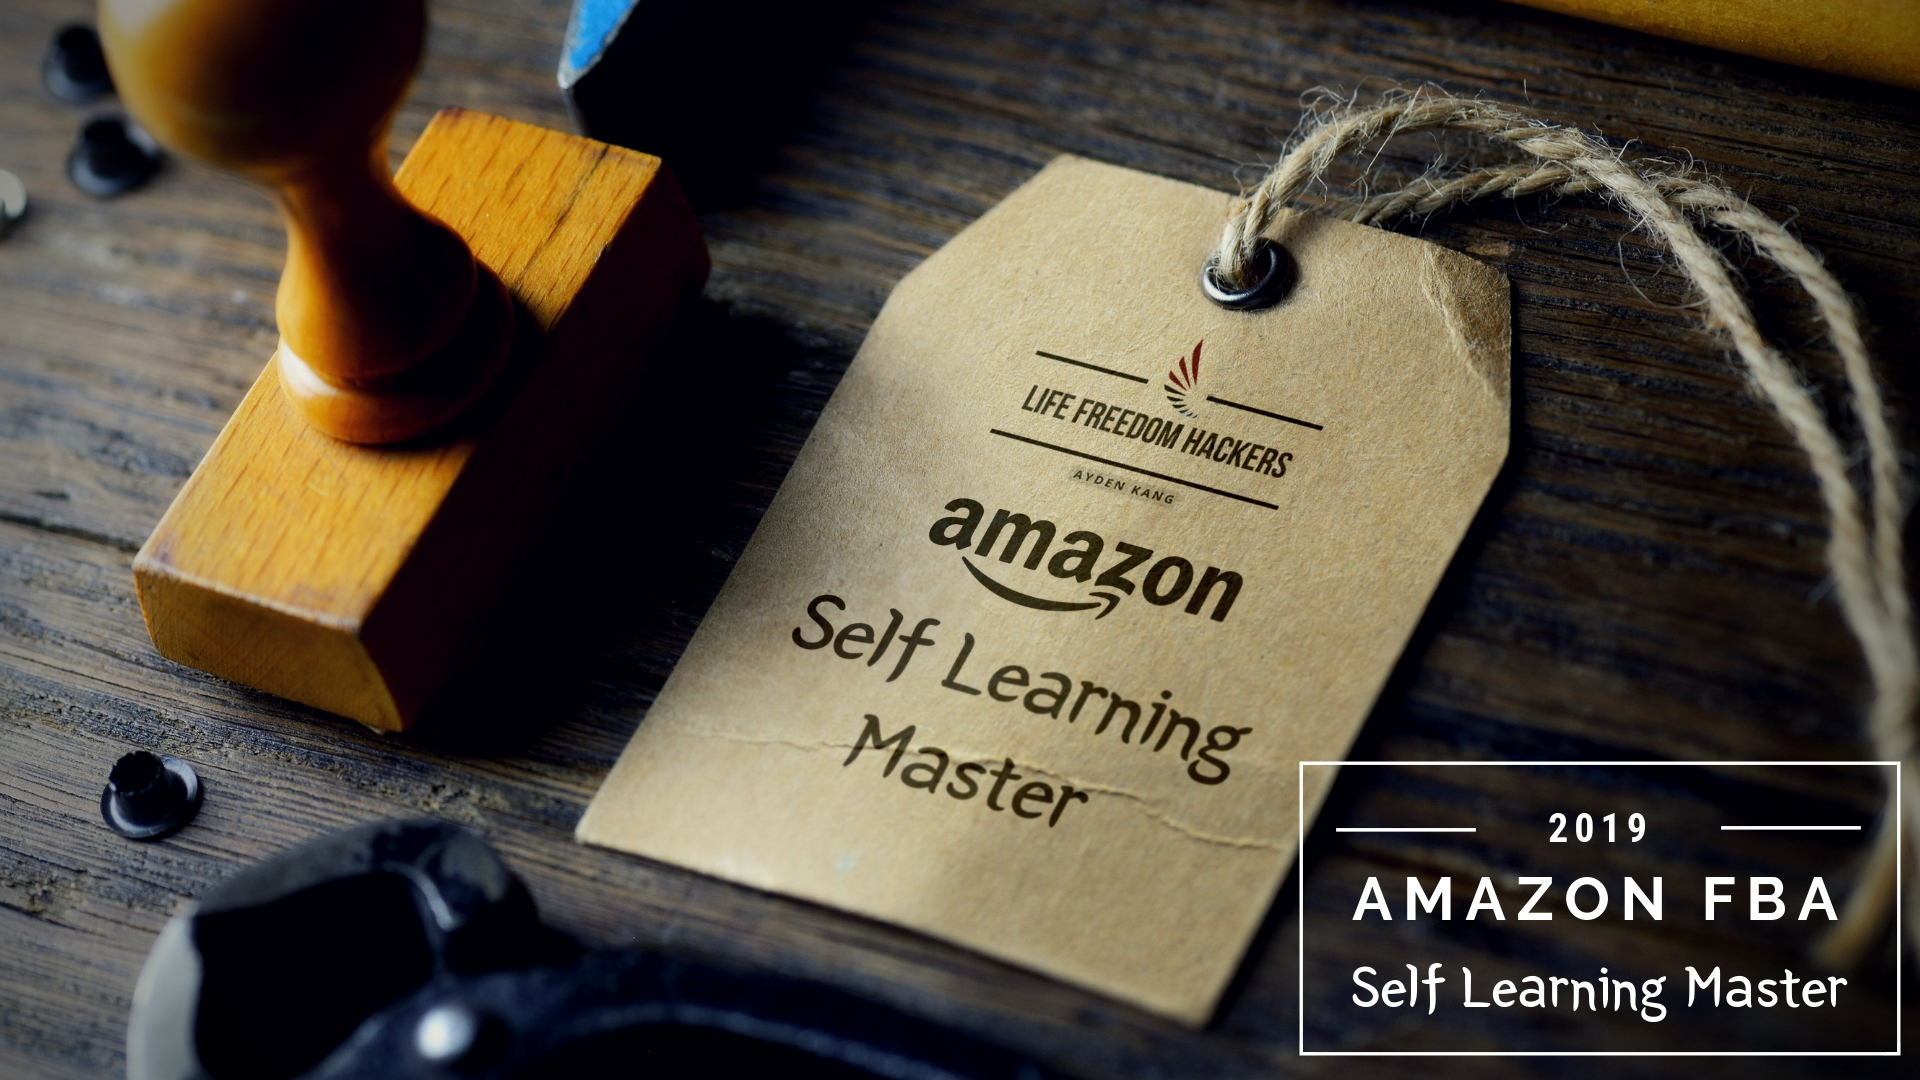 Amazon FBA Self-Learning Master for 2019